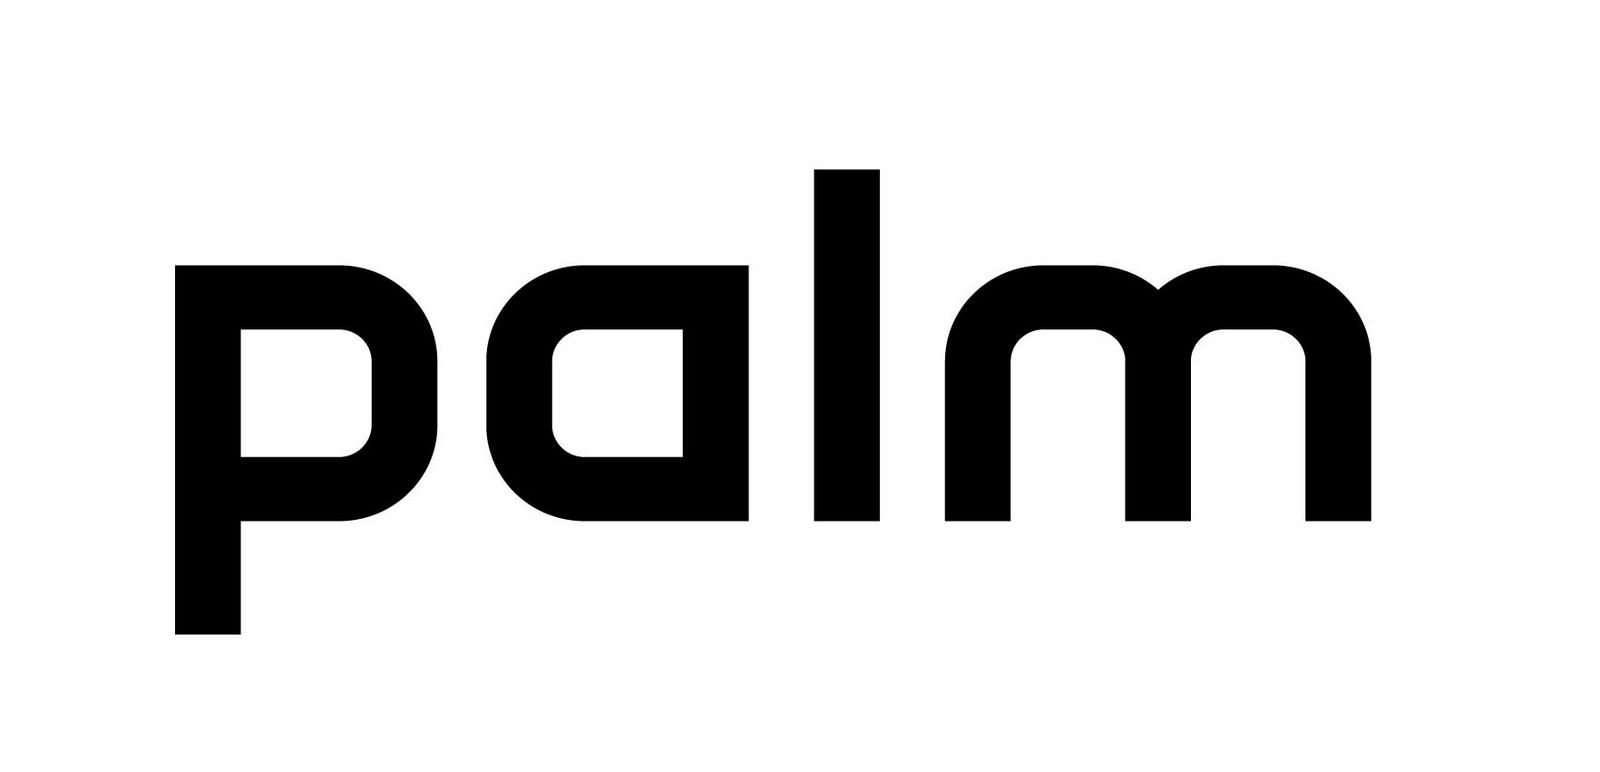 Tcl Revives Palm New Company Will Be Stationed In Silicon